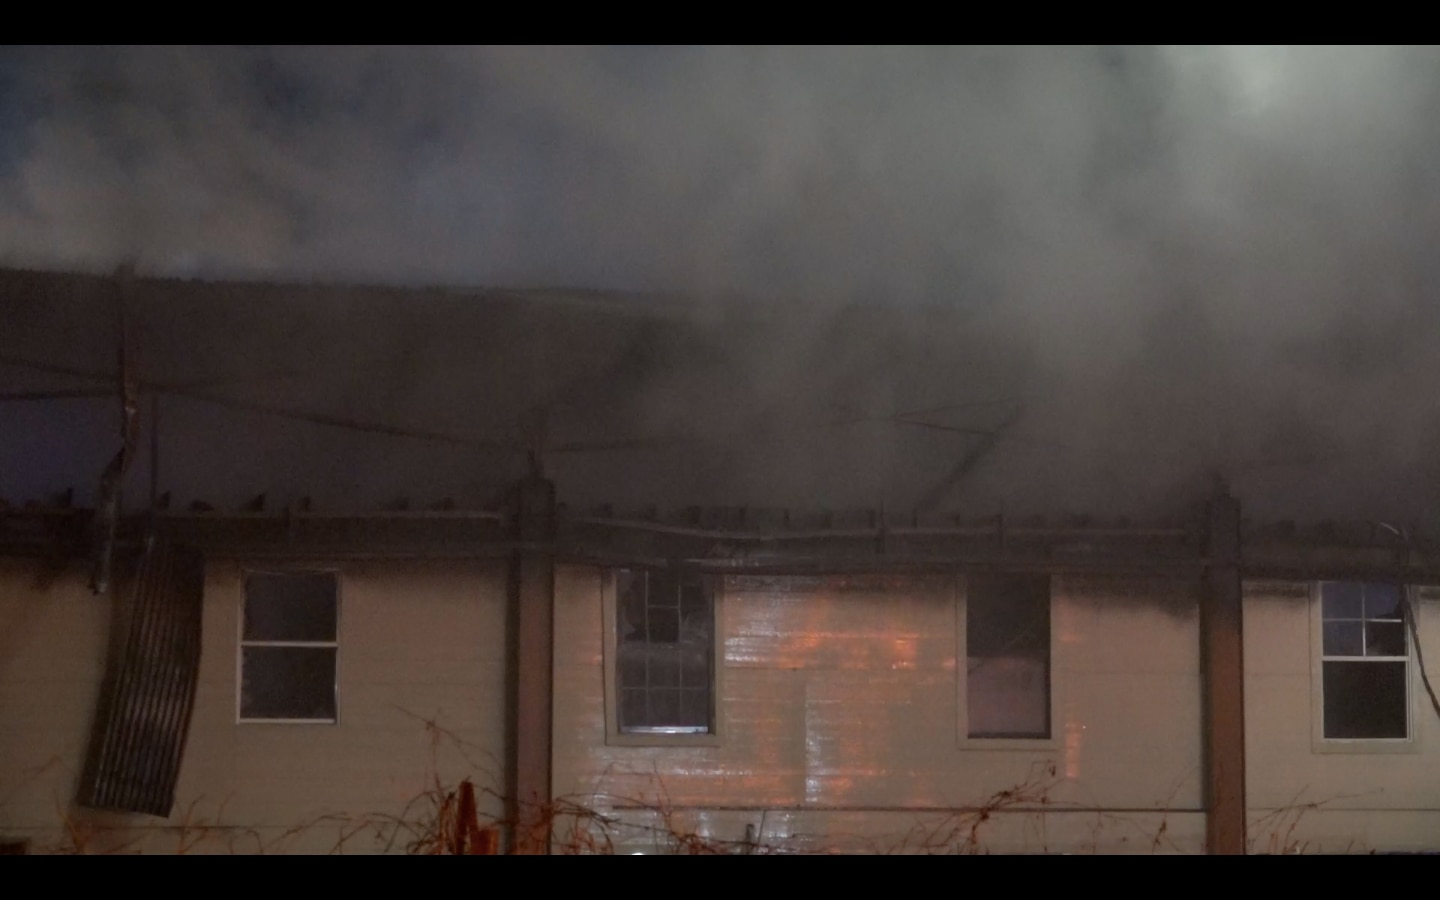 A vacant building in the process of being converted to apartments was damaged by fire early Tuesday morning in South Dallas.